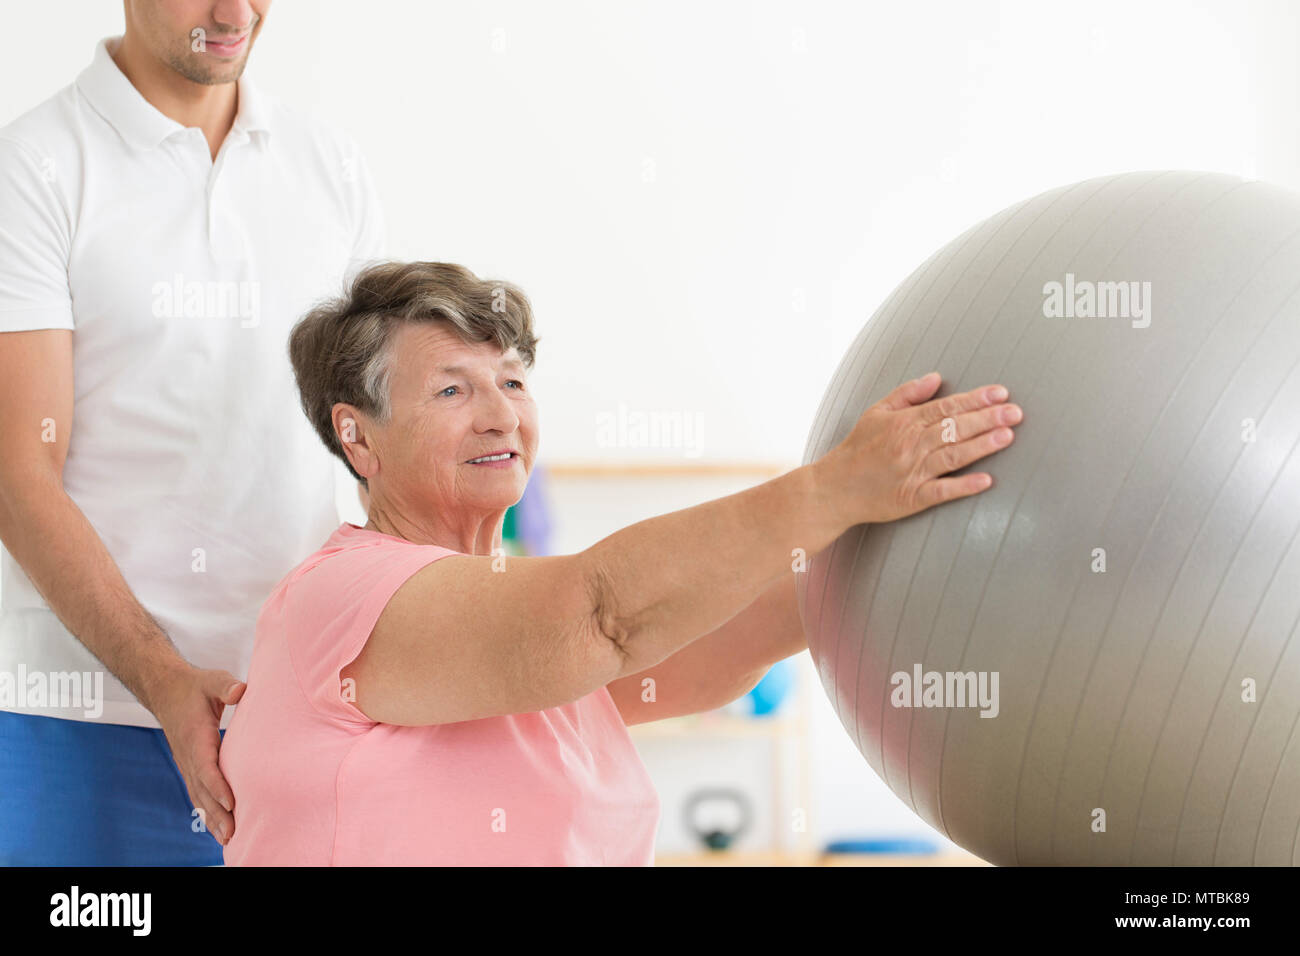 Elderly patient having an isometric physiotherapy session with a grey fit ball and a physical therapist - Stock Image